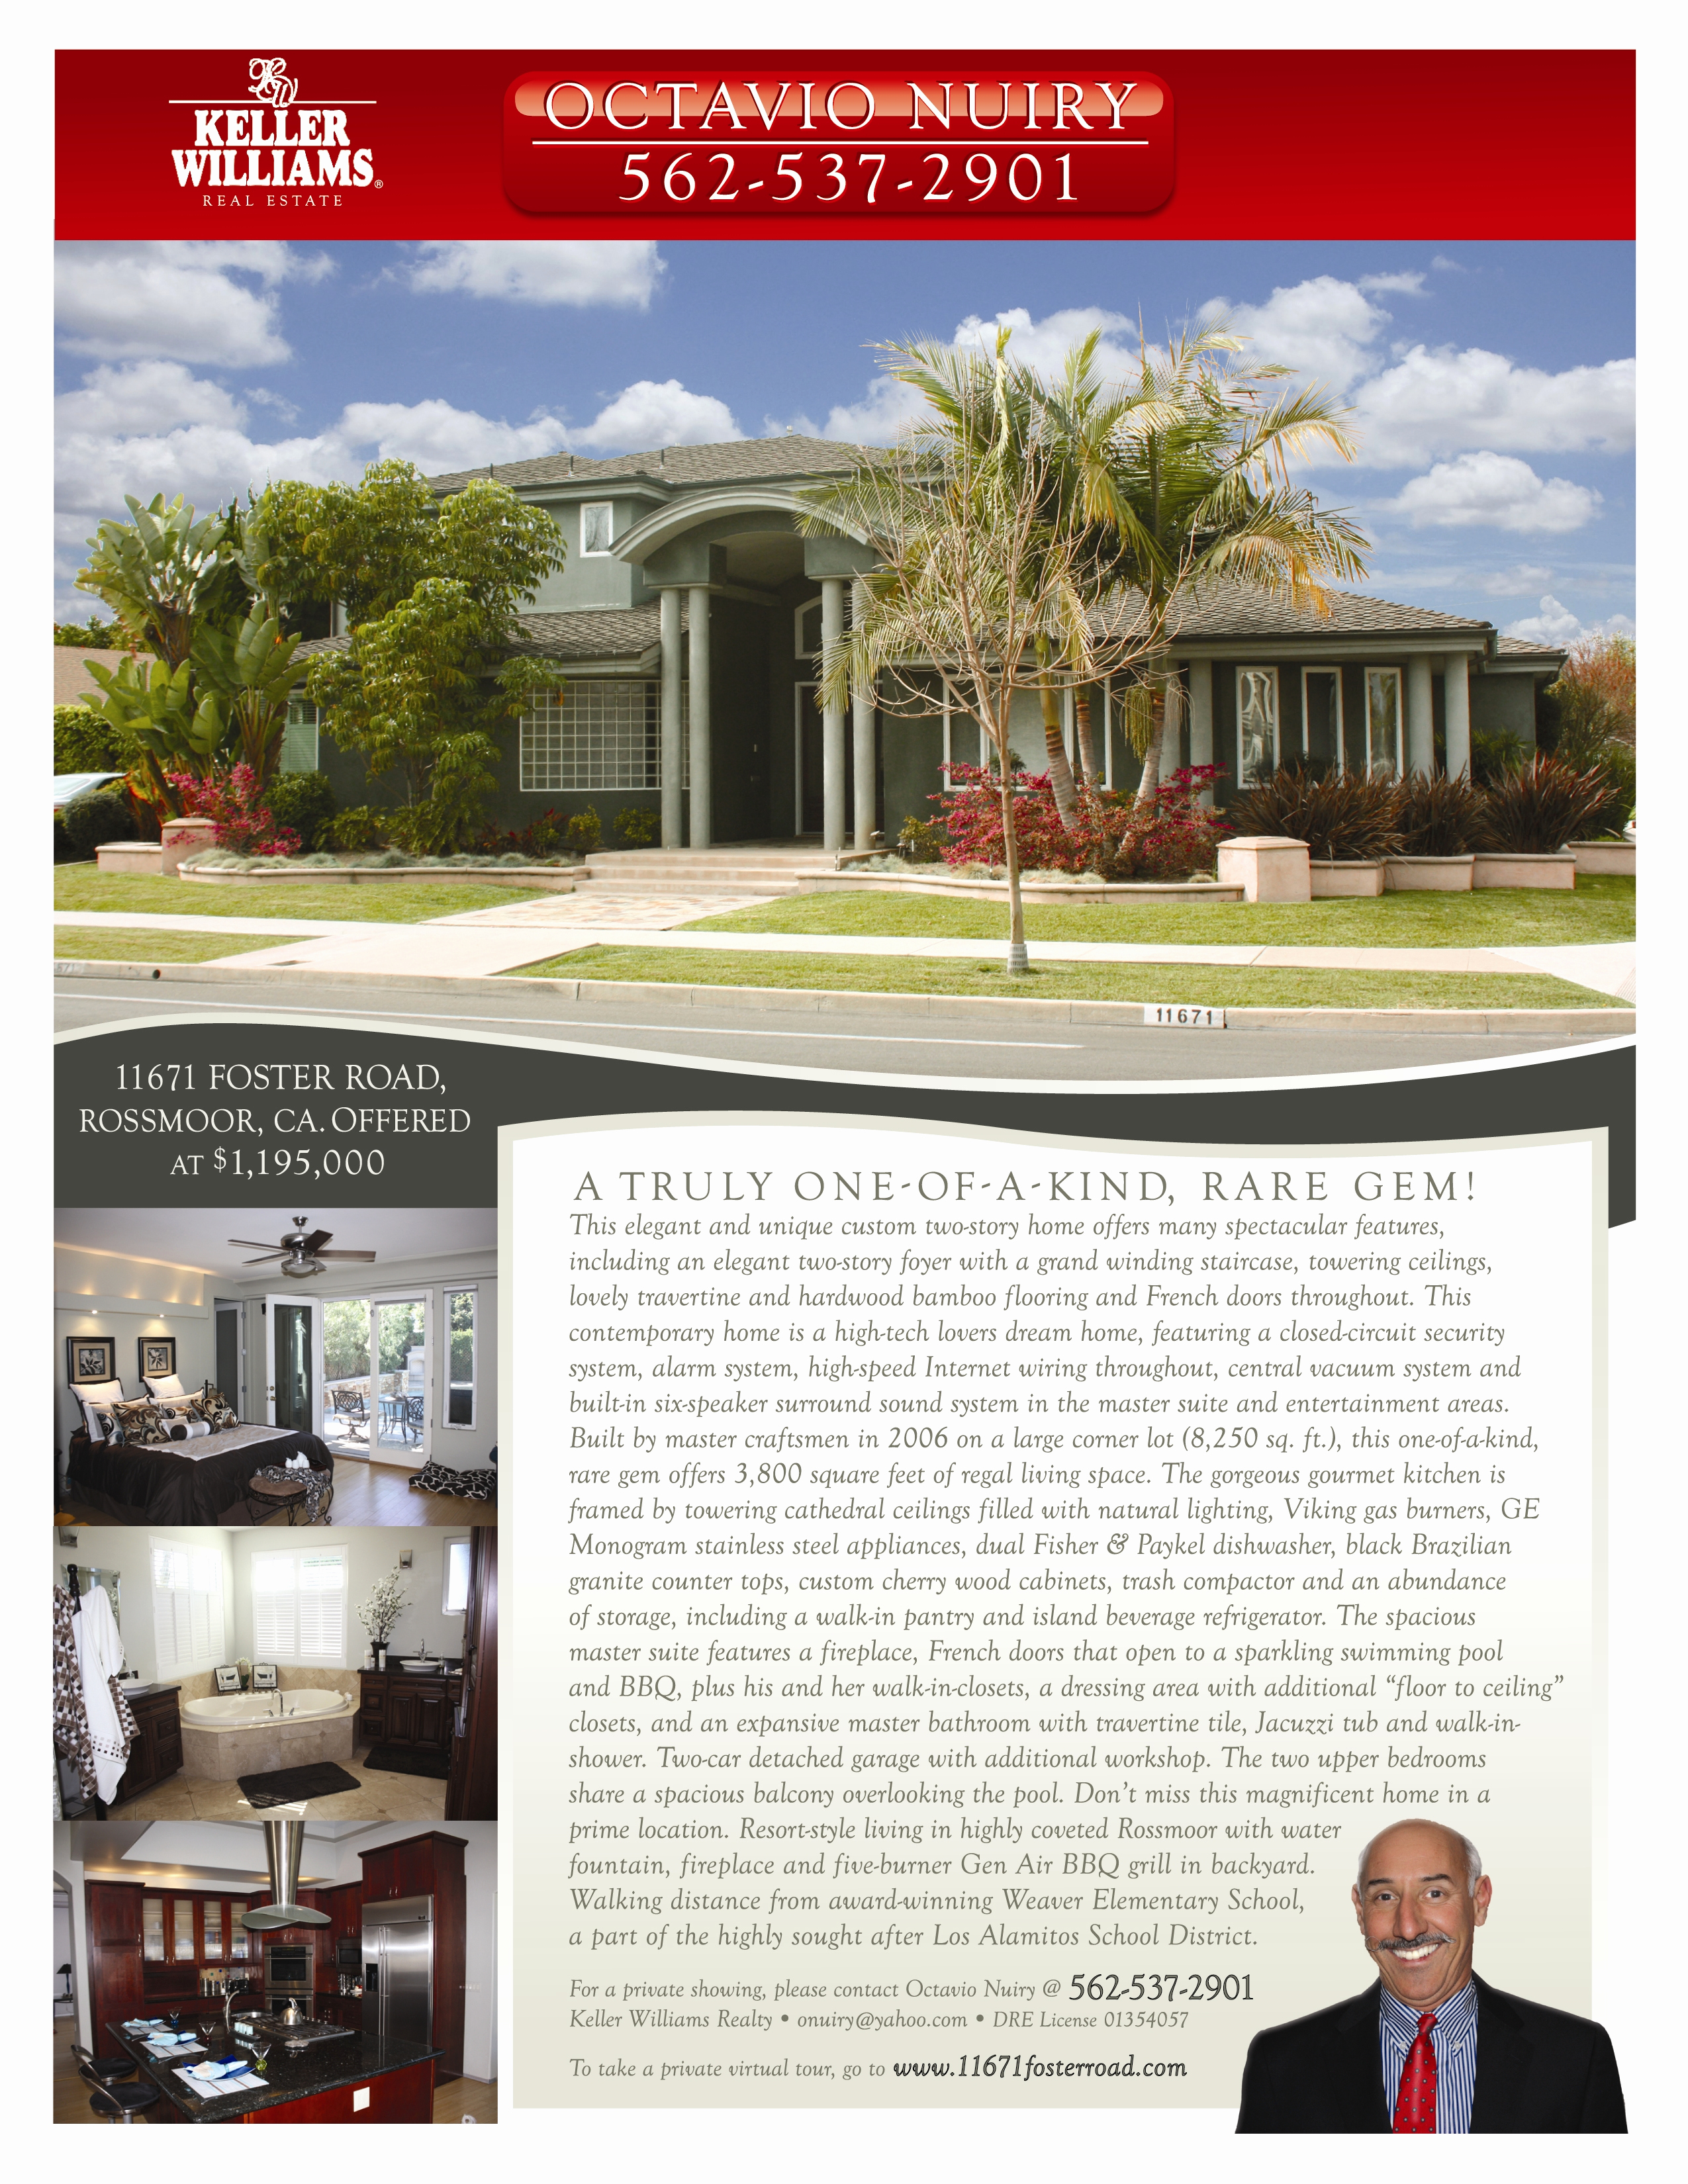 Home for Sale Flyer Lovely Wel E to the Rossmoor Real Estate Blog Just Another